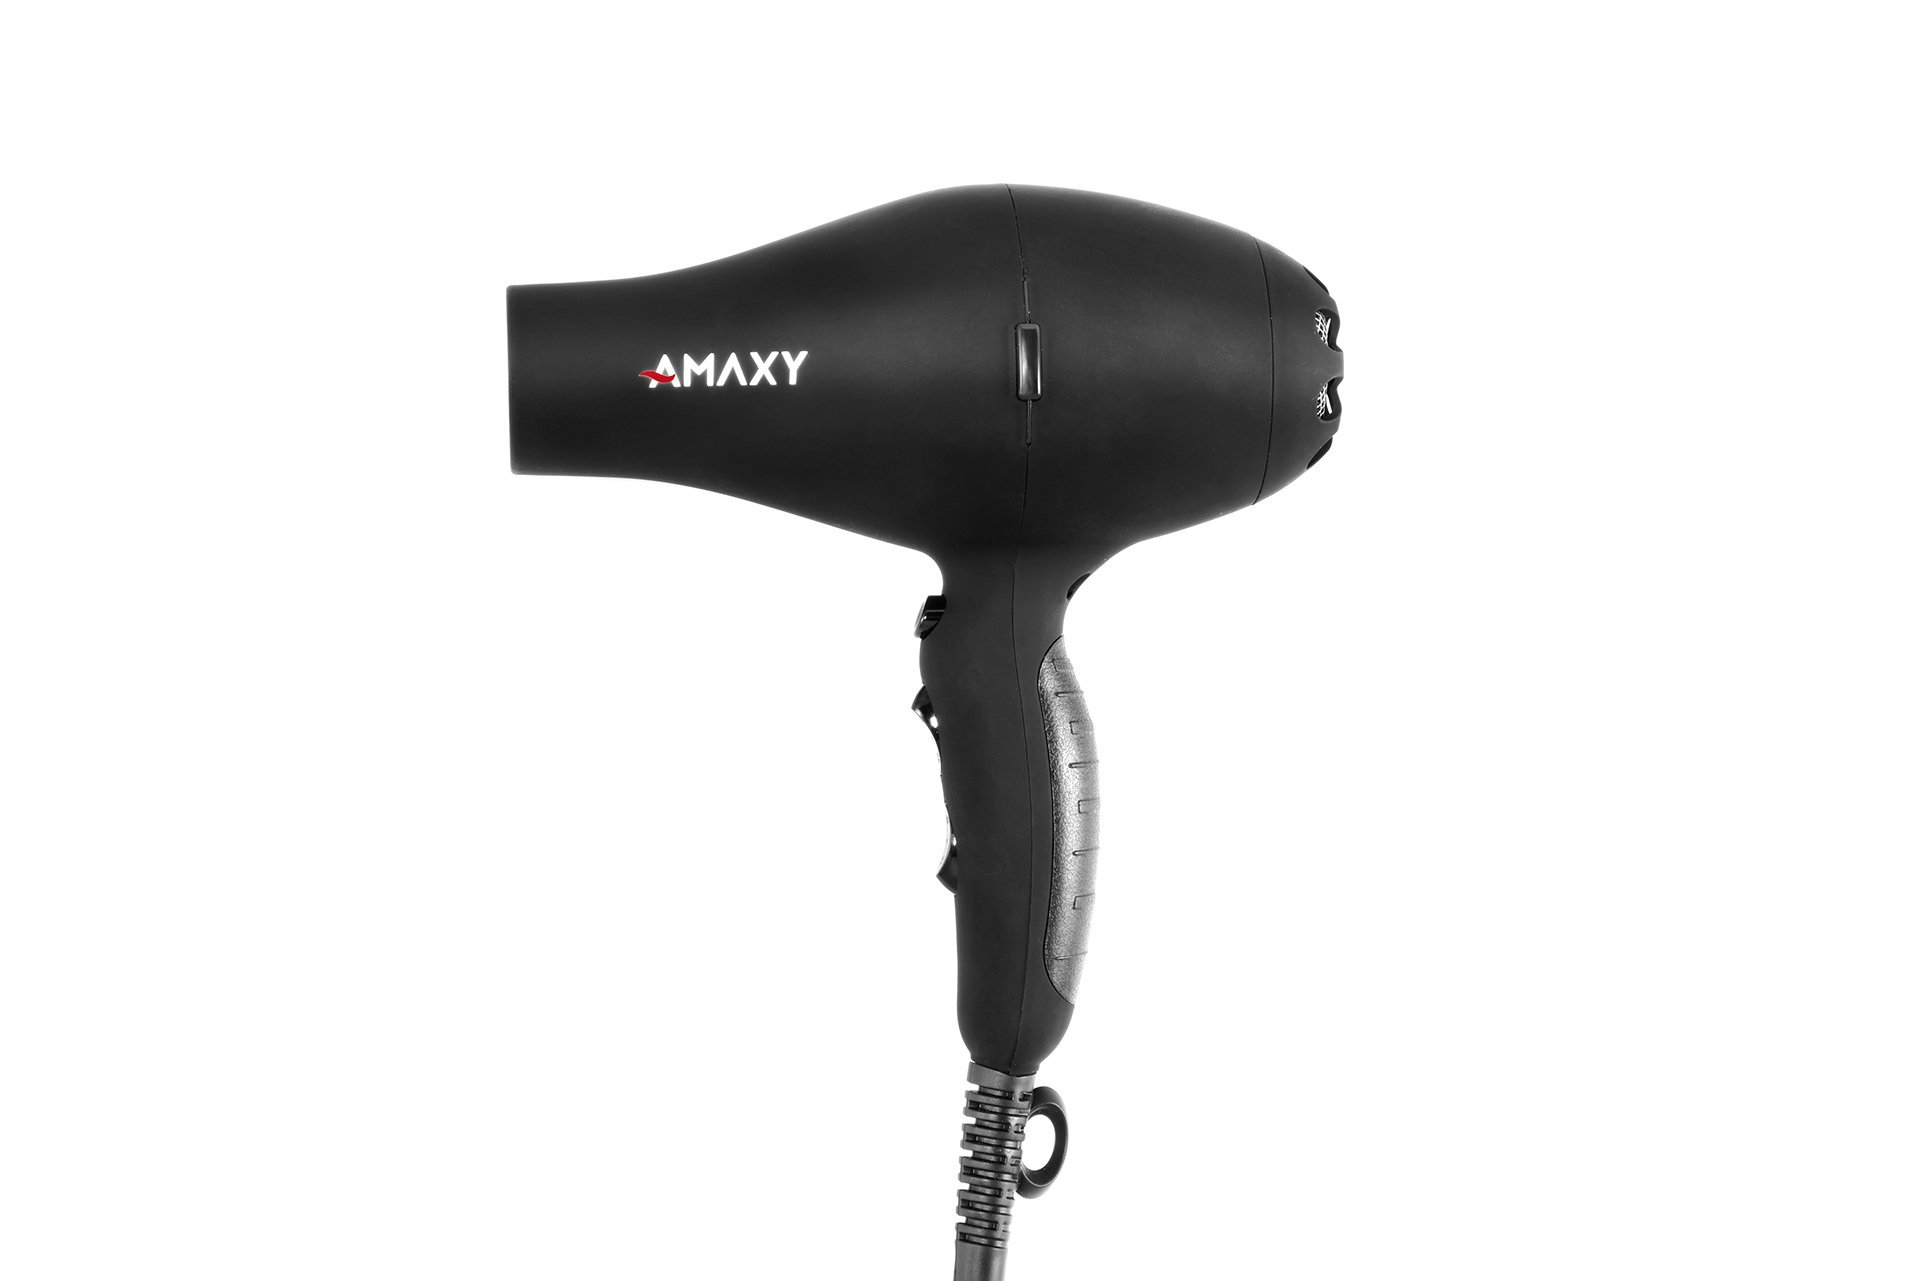 Honeycomb Infrared Therapy Hair Dryer (Real Infrared Light) - Prevent hair loss & overheating & damaging the hair - Heal the scalp & cuticles with Real Infrared - Frizz Free - Silky Hair - More Shine